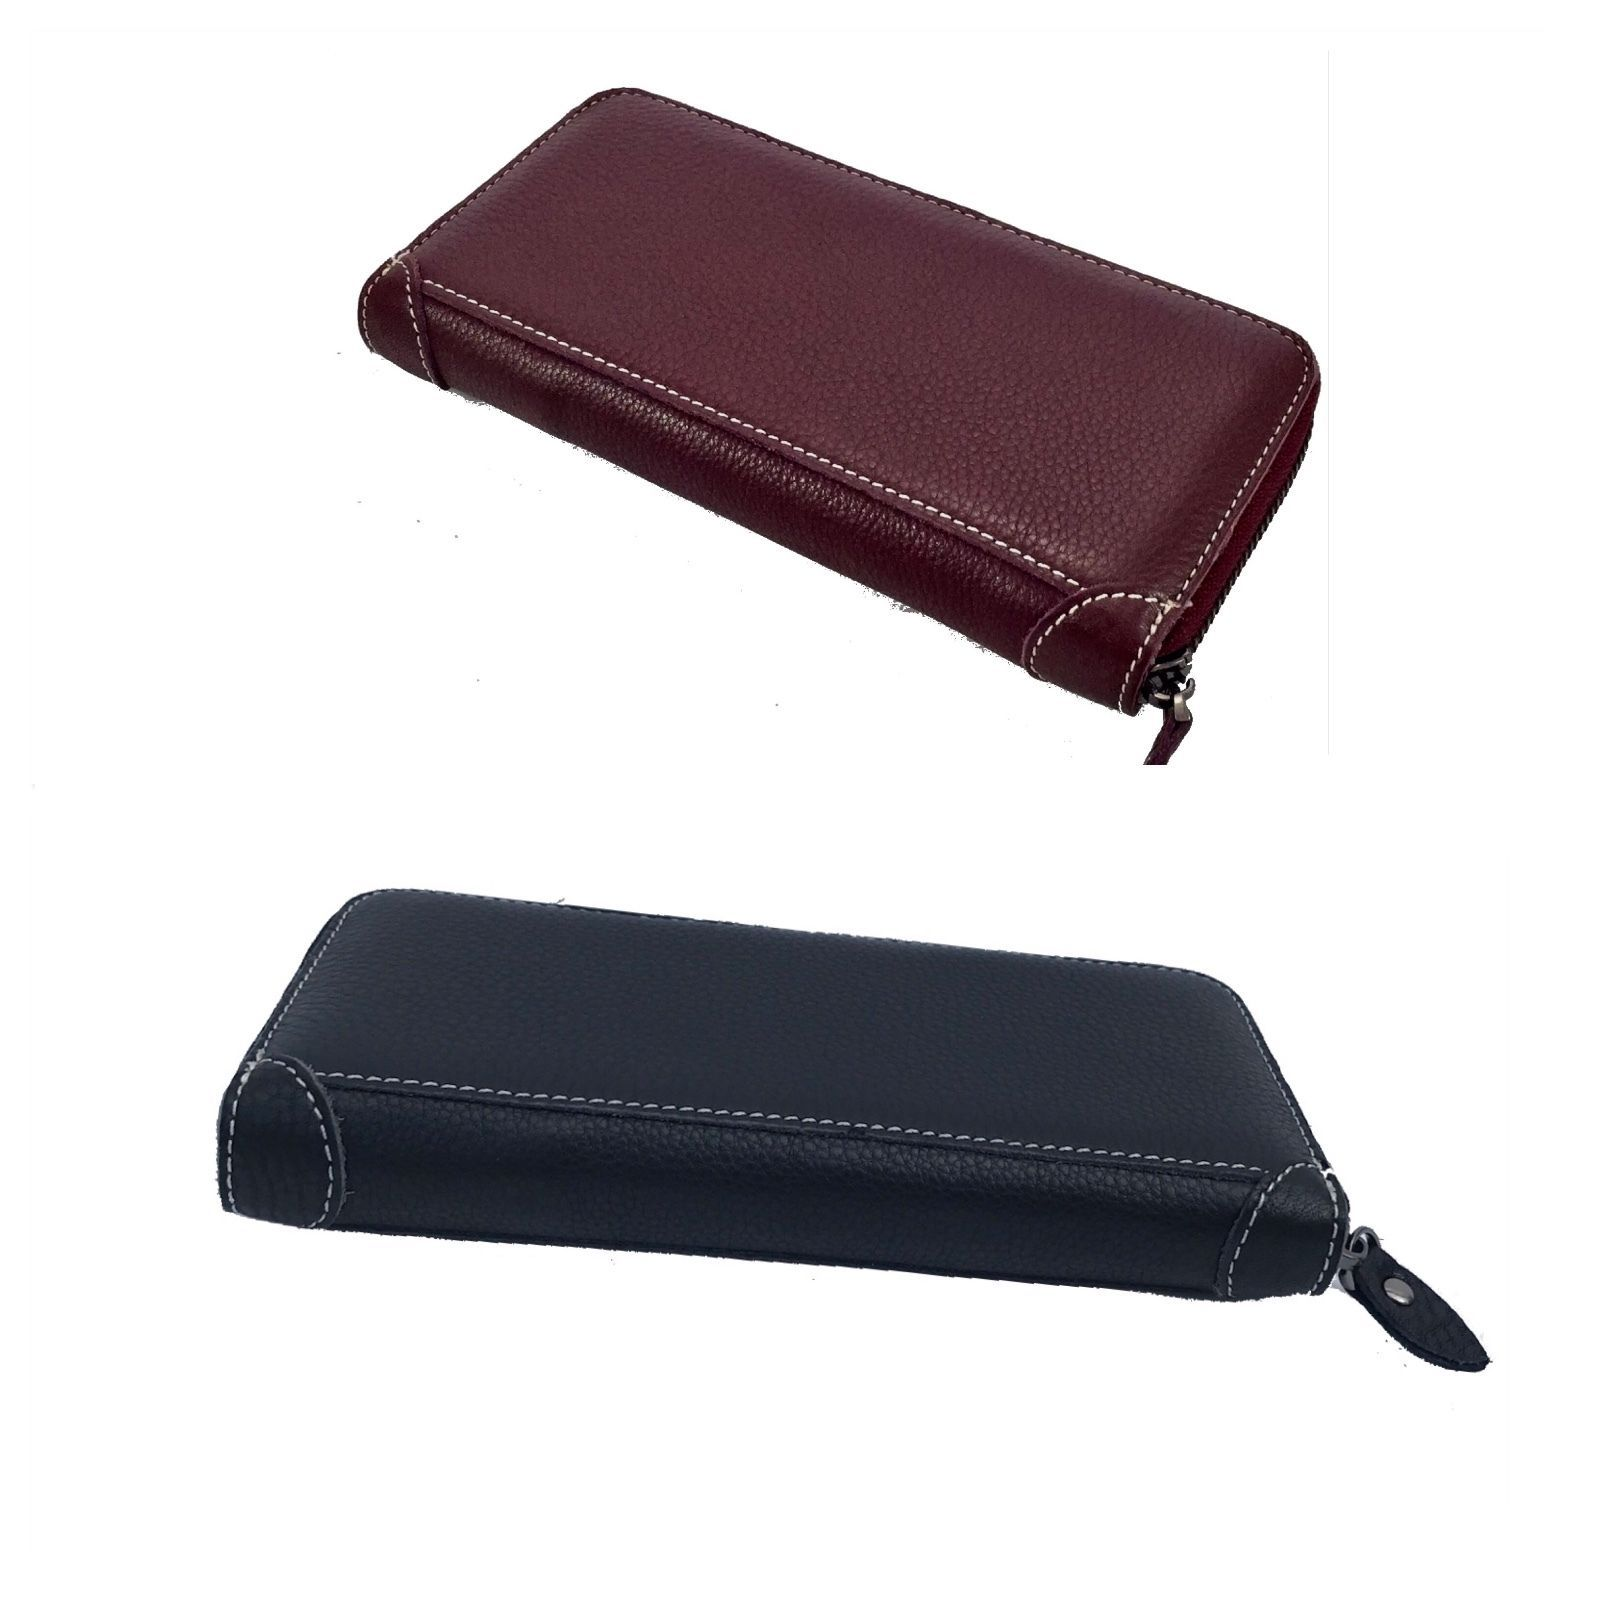 New Soft Pebbled Italian Leather Zip Around Wallet Clutch in Black and Burgundy